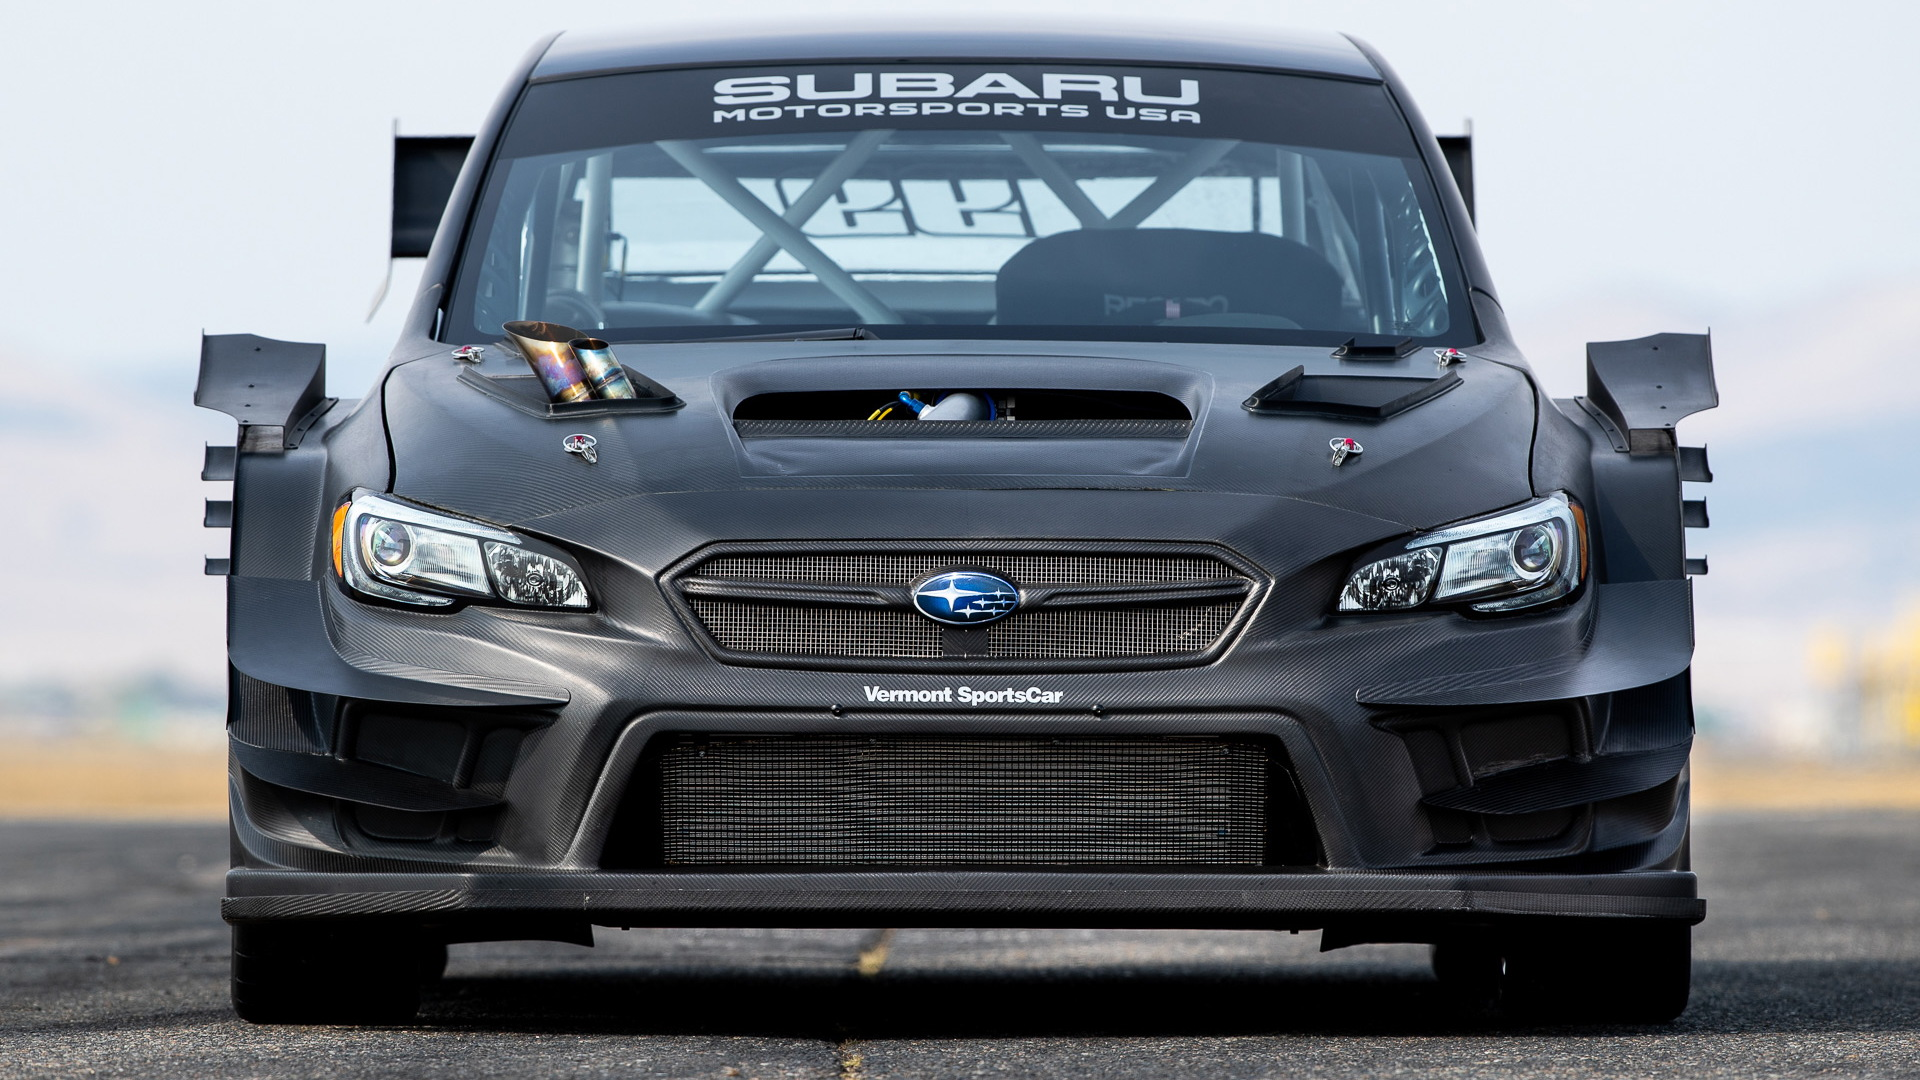 Travis Pastrana's custom Subaru WRX STI built for Gymkhana 11